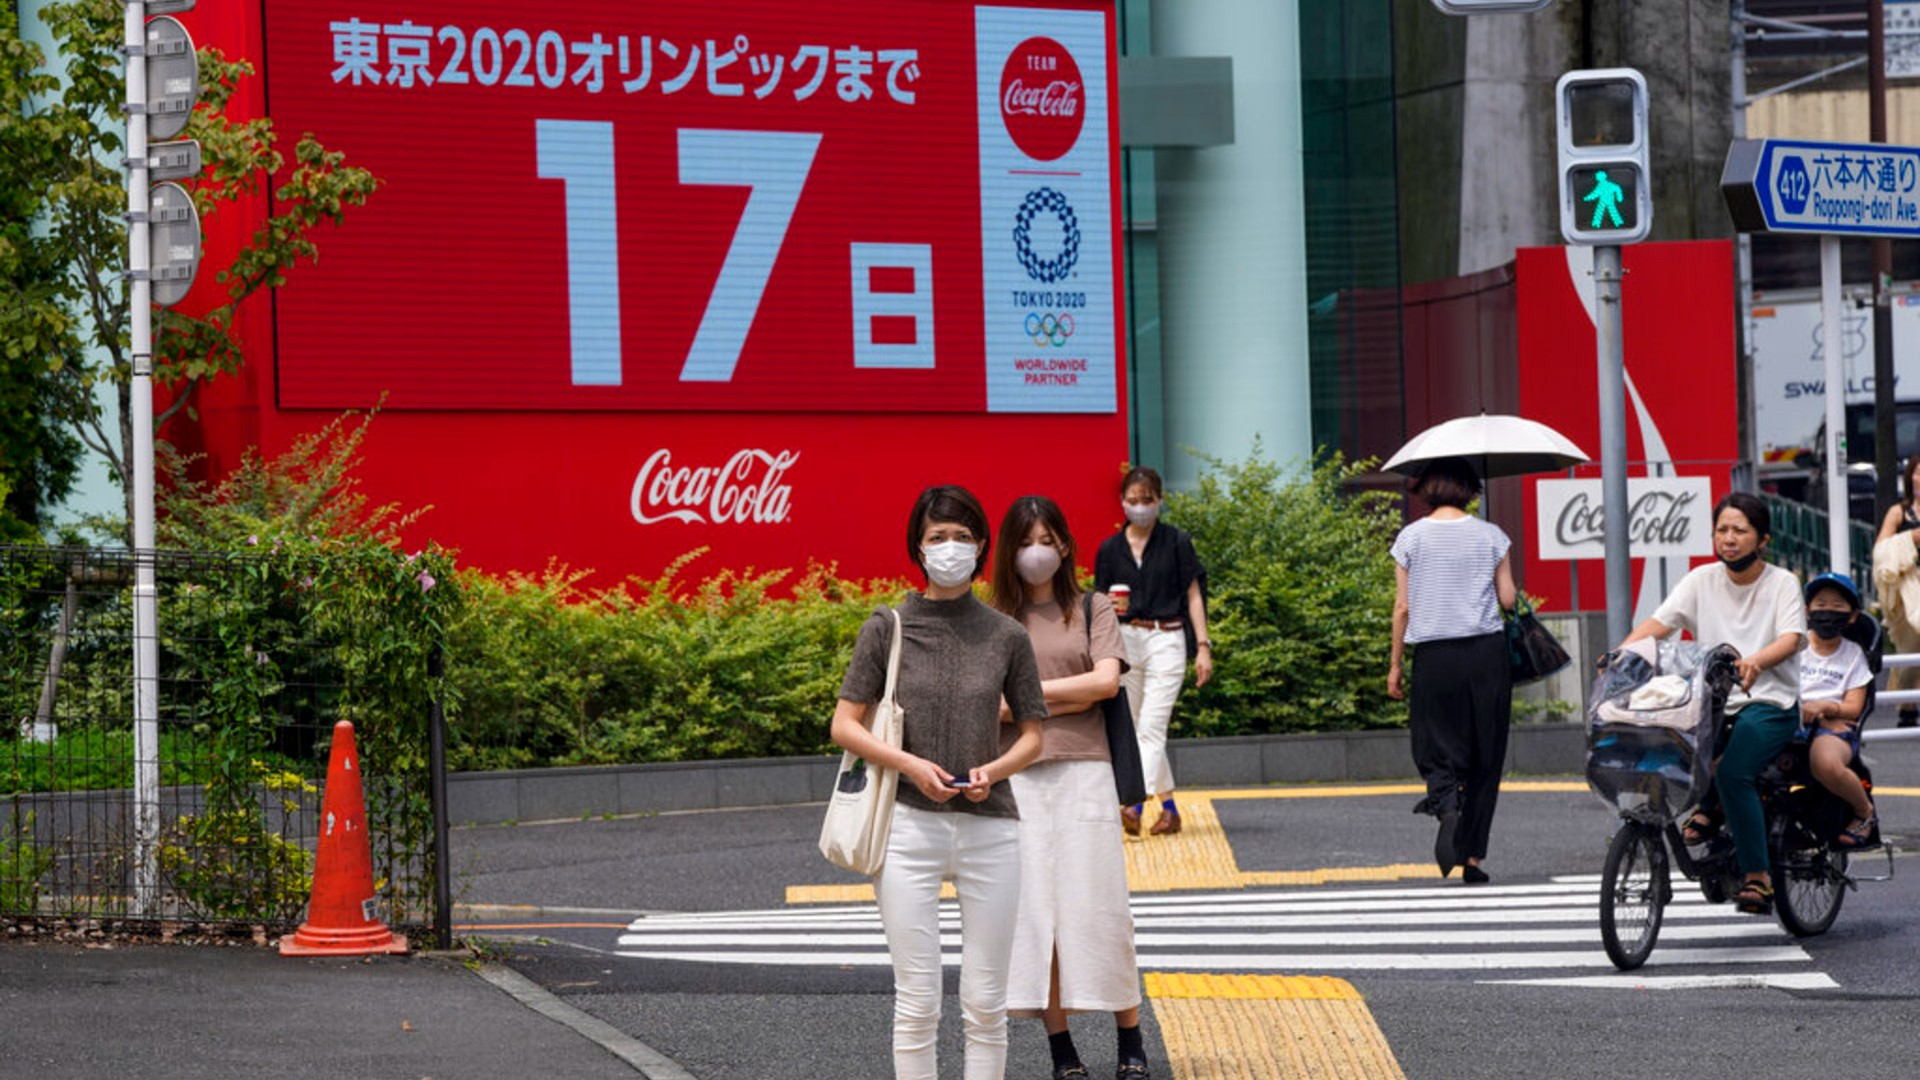 People wearing protective masks wait at a crosswalk as an electric display in the background shows 17 days to Tokyo 2020 Olympics Tuesday, July 6, 2021, in Tokyo. (AP Photo/Kiichiro Sato)